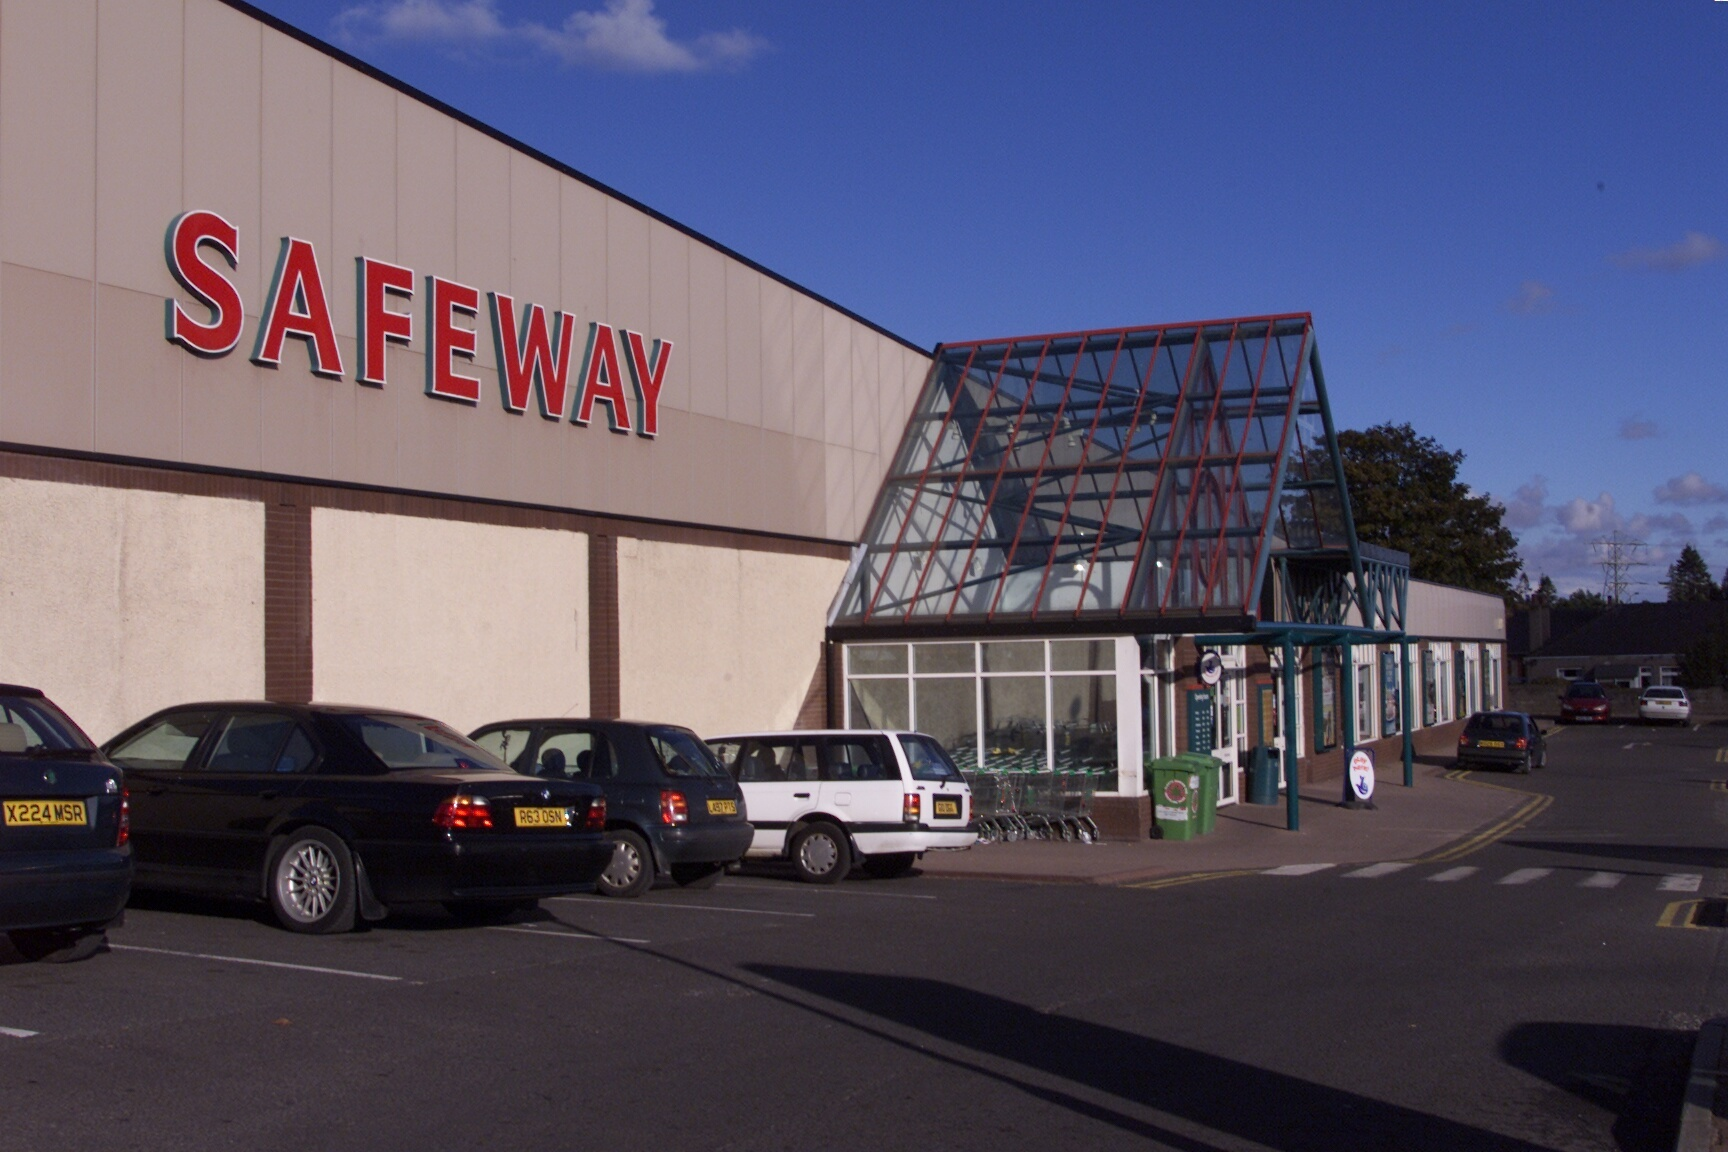 The former Safeway store on Dundee's Arbroath Road, which is now Aldi.